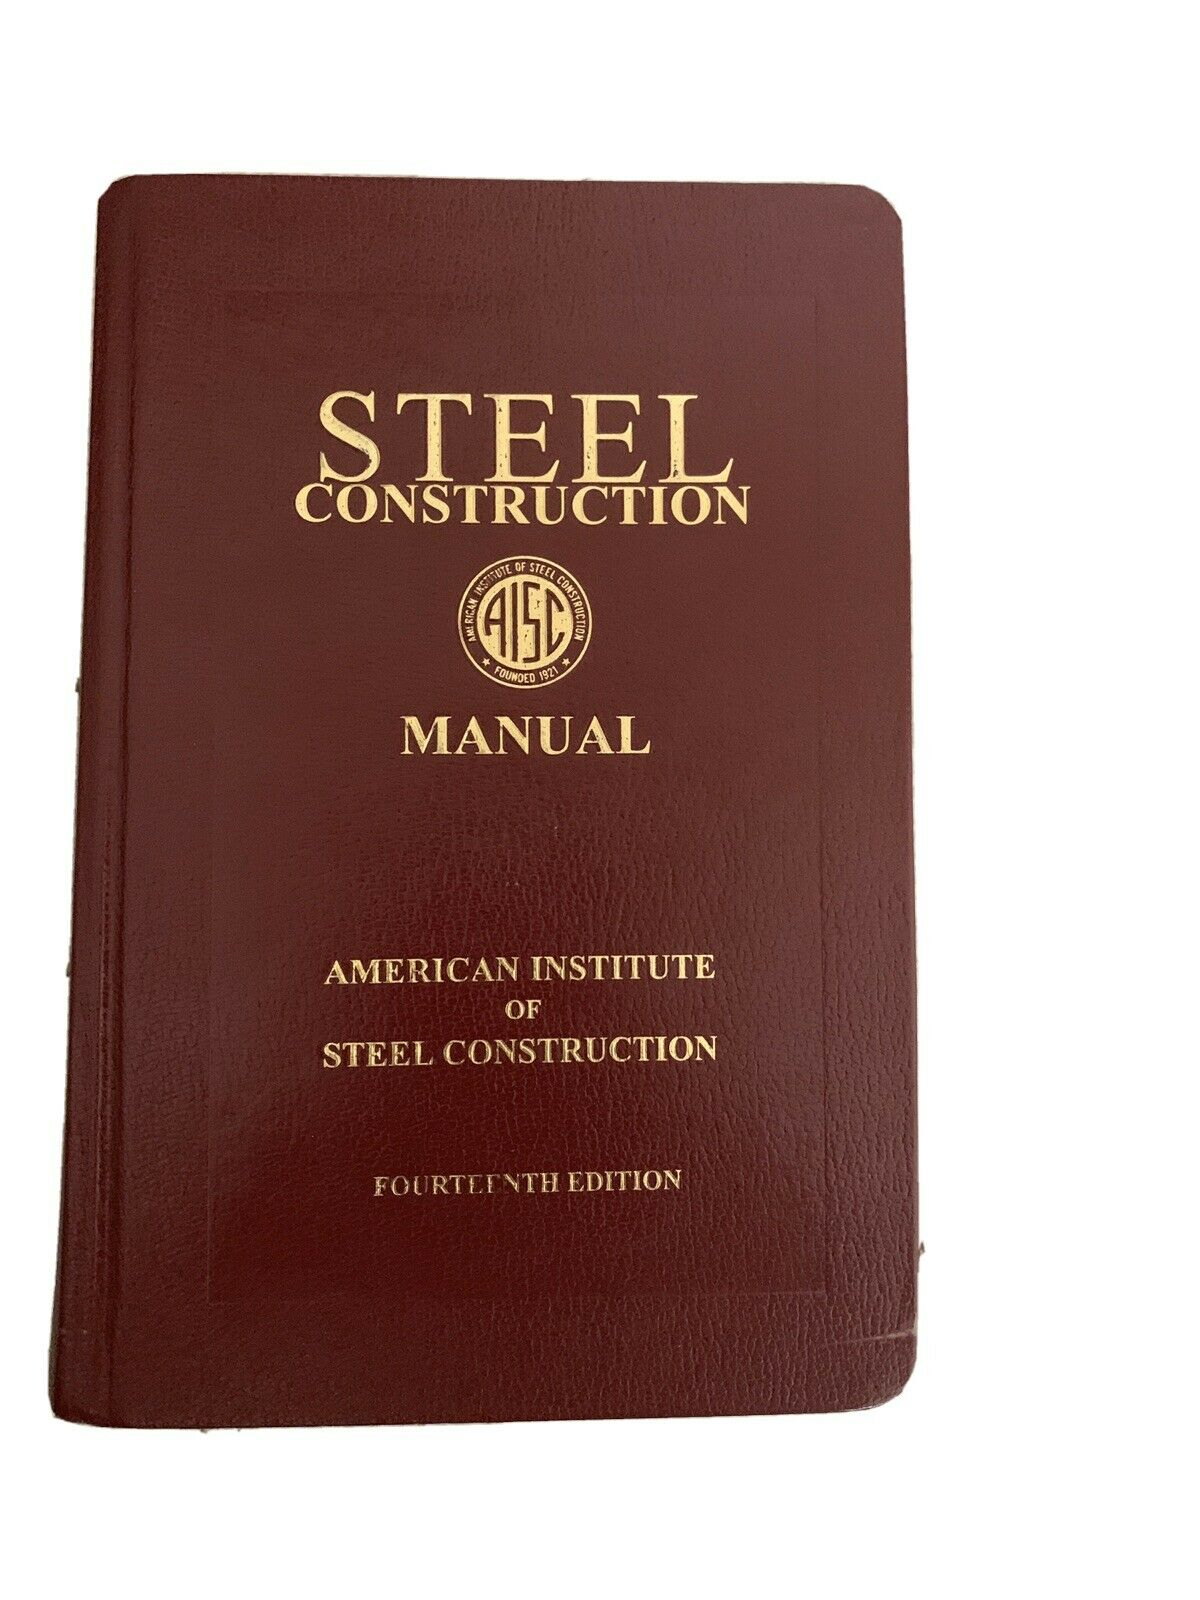 aisc steel construction manual 13th edition free download